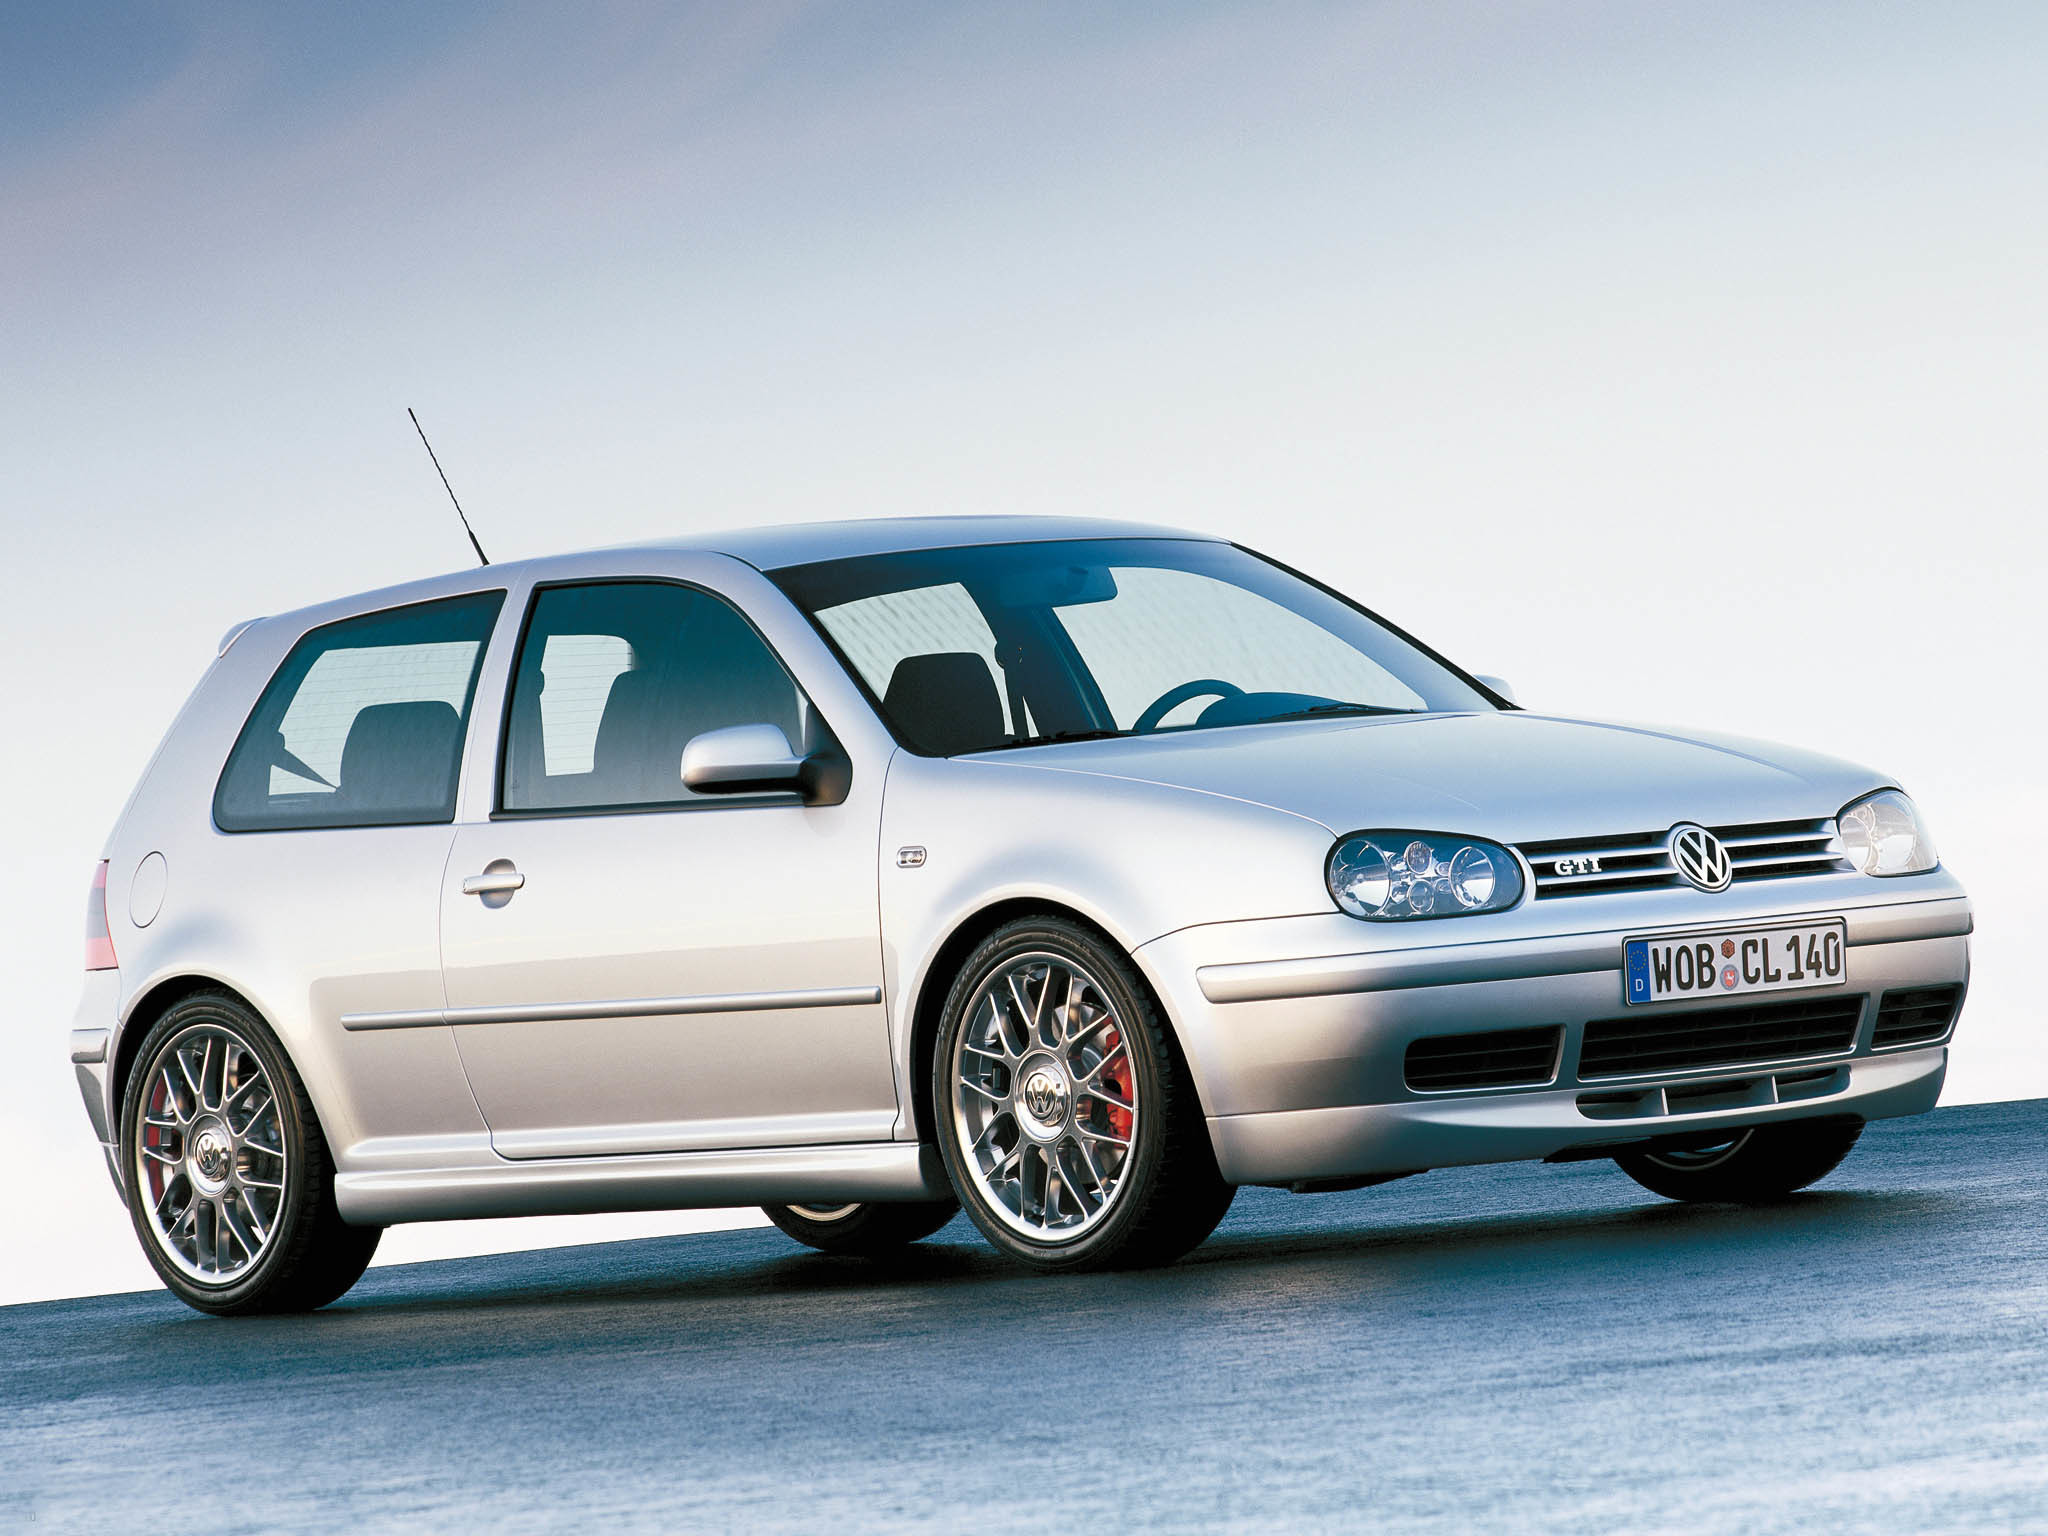 VW-Golf-IV-GTI-25th-Anniversary-1.jpg